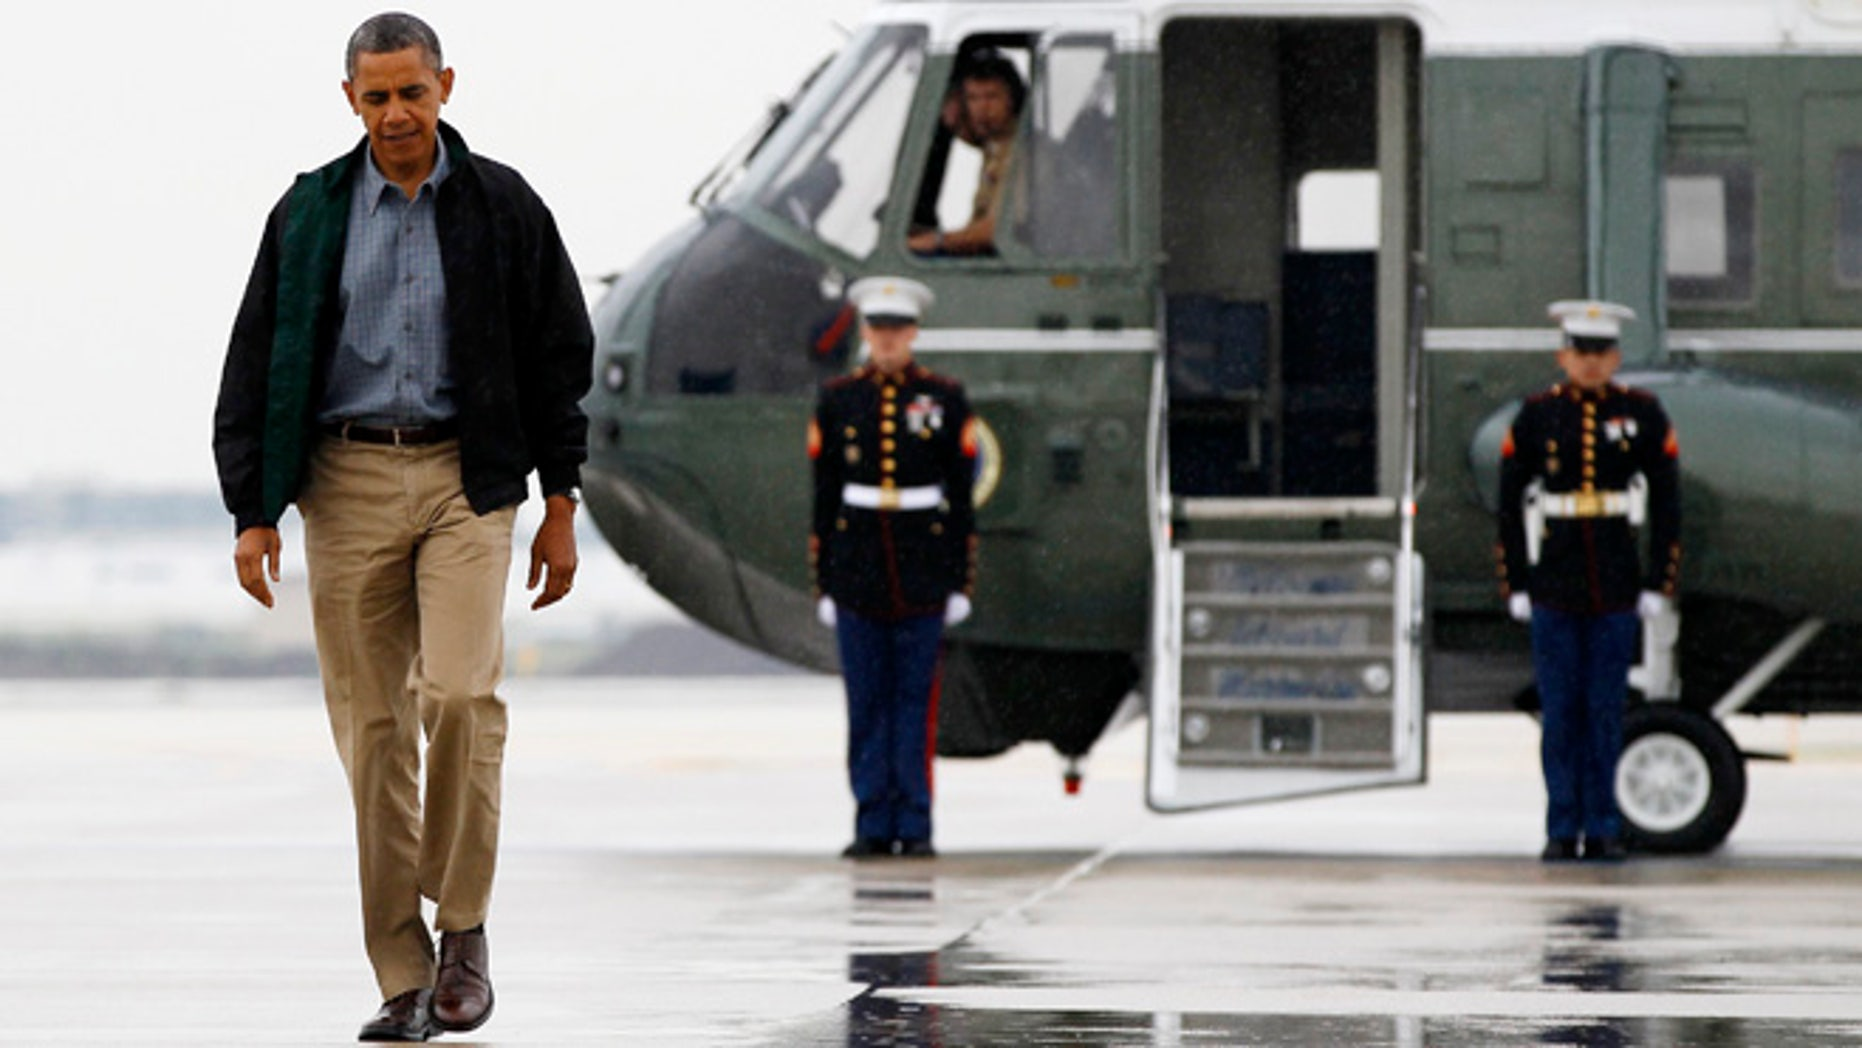 President Barack Obama walks from Marine One to board Air Force One at O'Hare International Airport in Chicago, Monday, Aug. 13, 2012 en route to Offutt Air Force Base in Bellevue, Neb., and onto a three day campaign bus tour through Iowa.